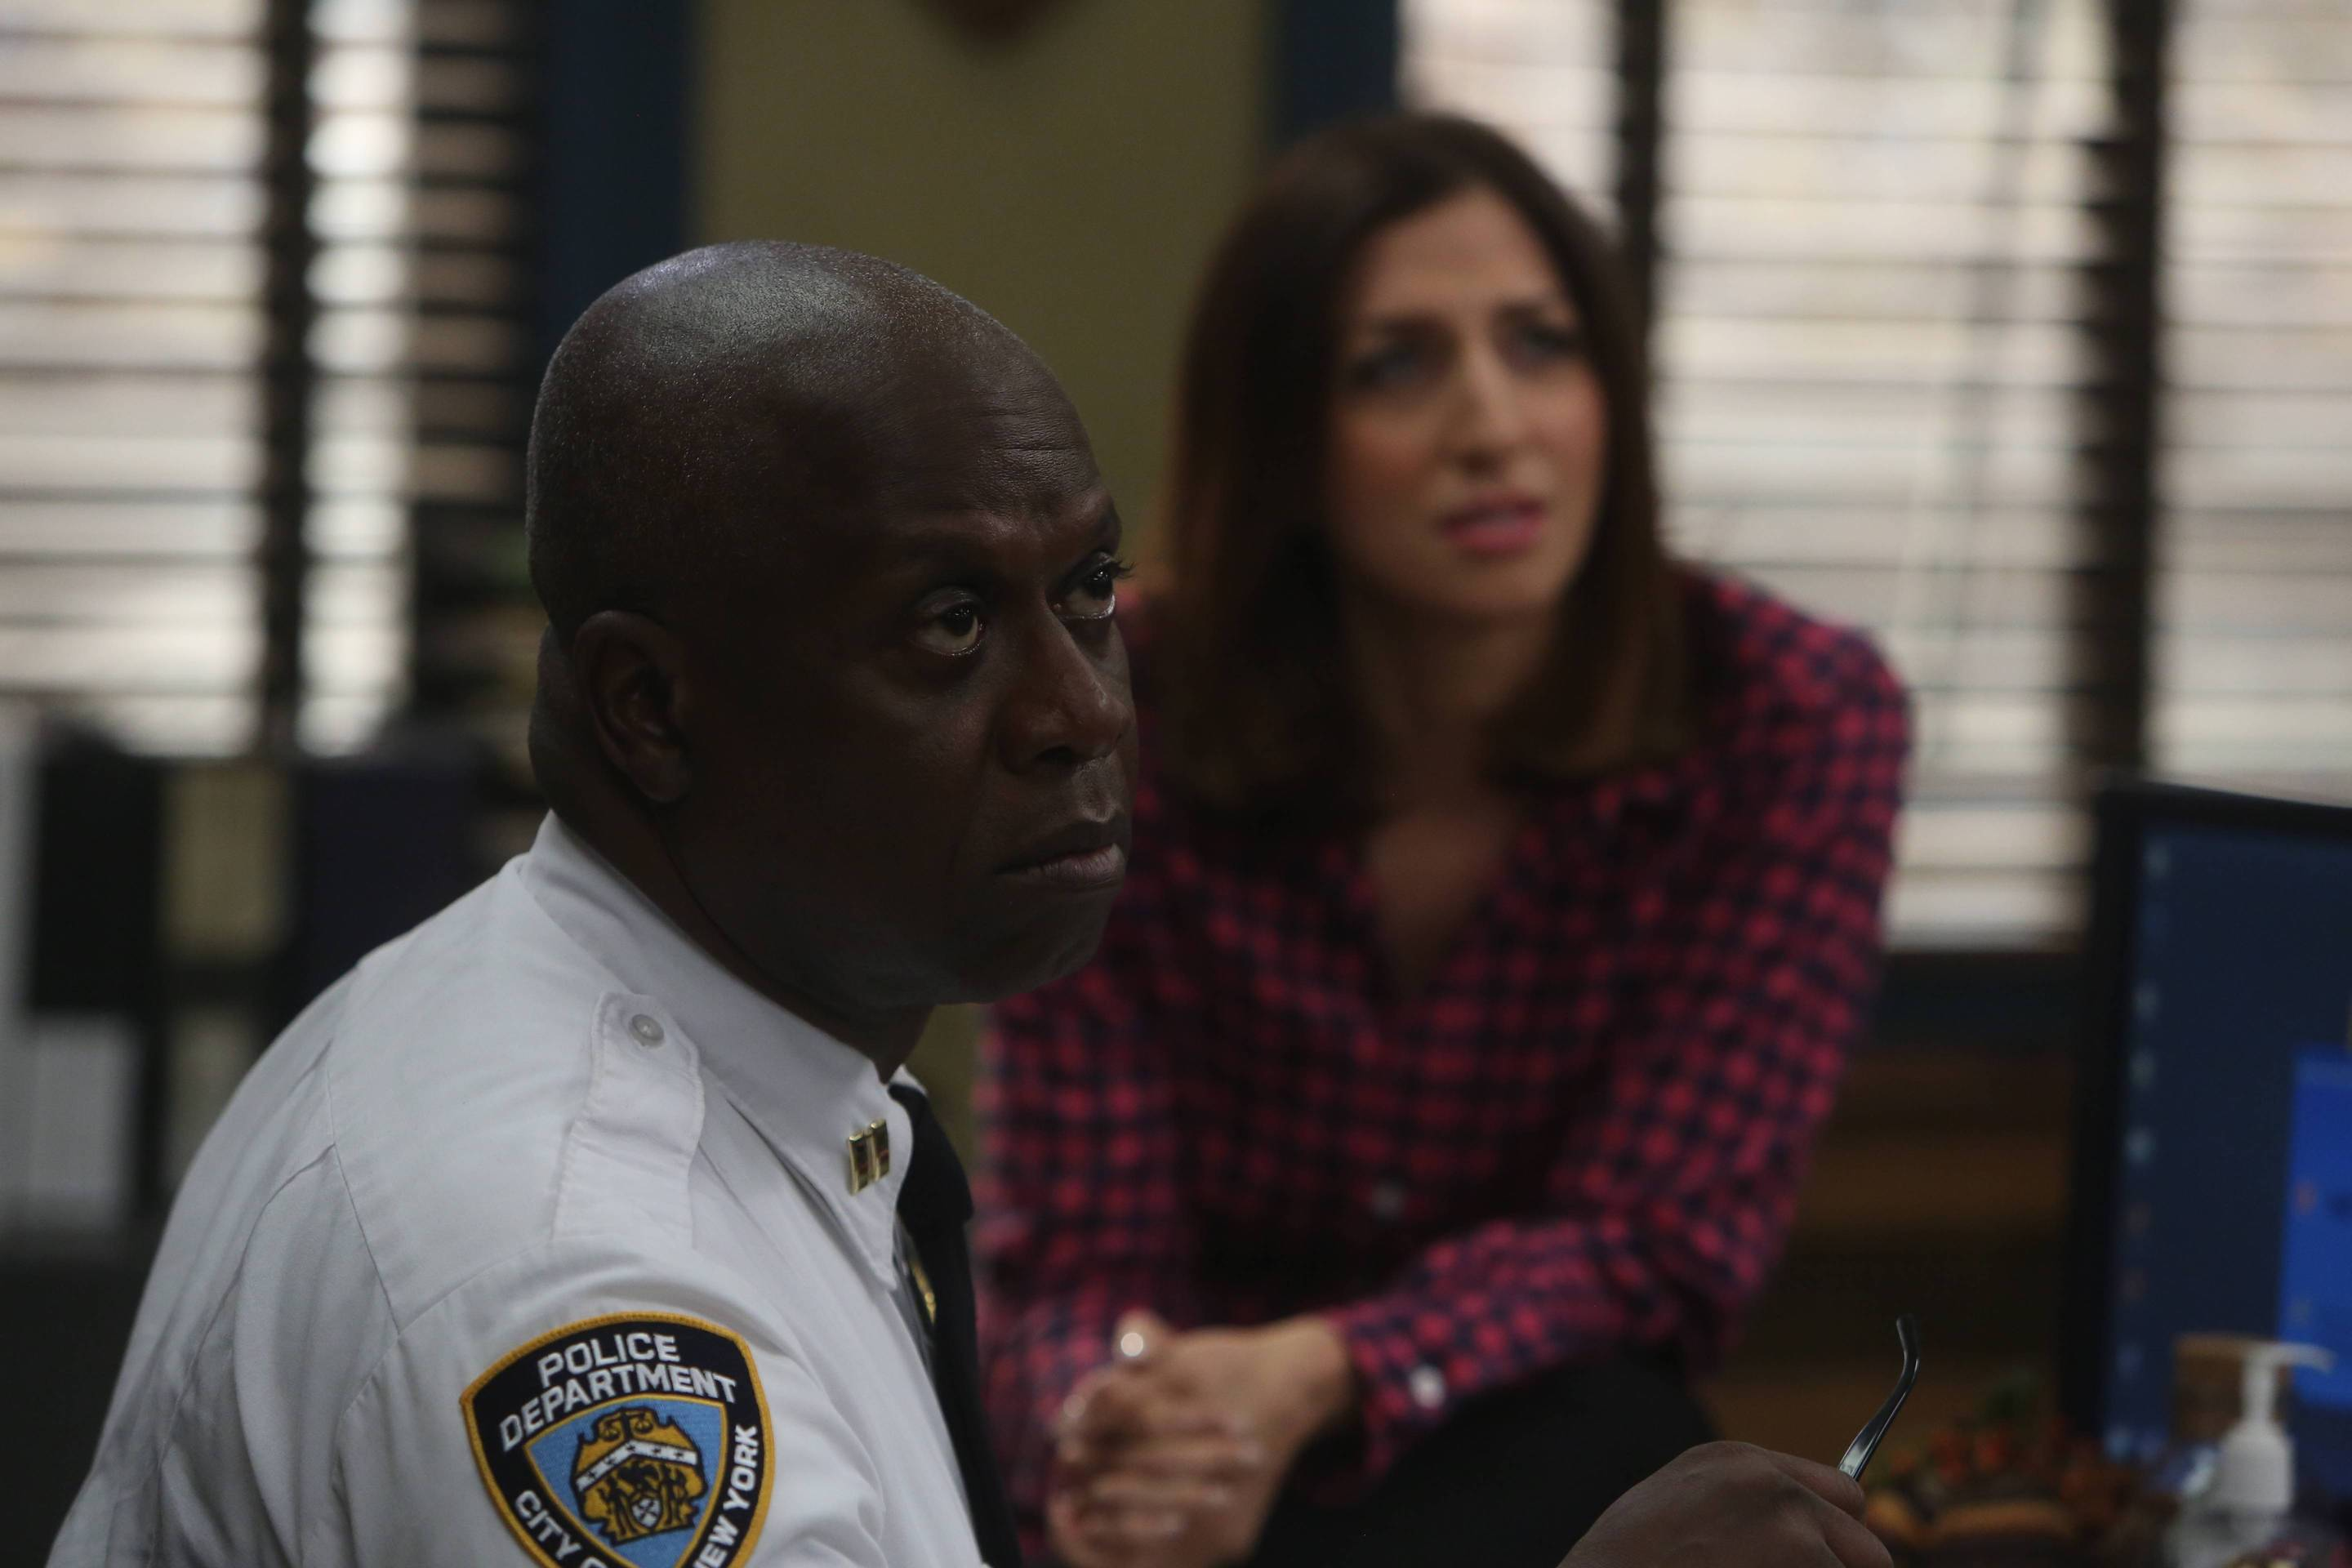 Brooklyn Nine-Nine 308-13